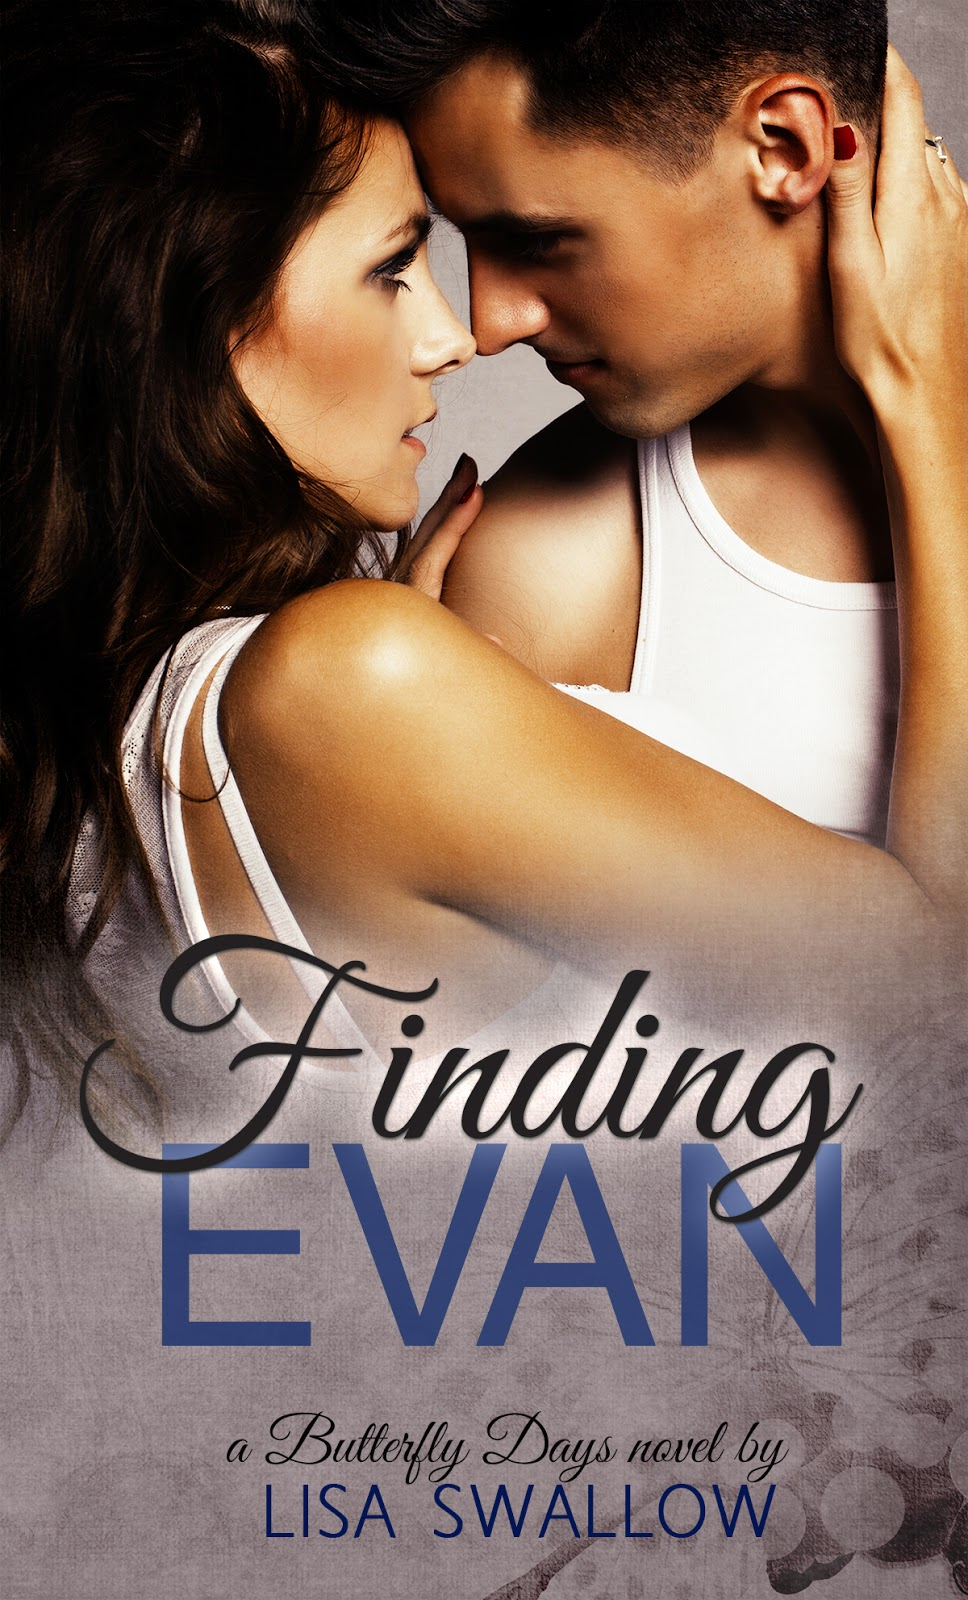 https://www.goodreads.com/book/show/18776145-finding-evan